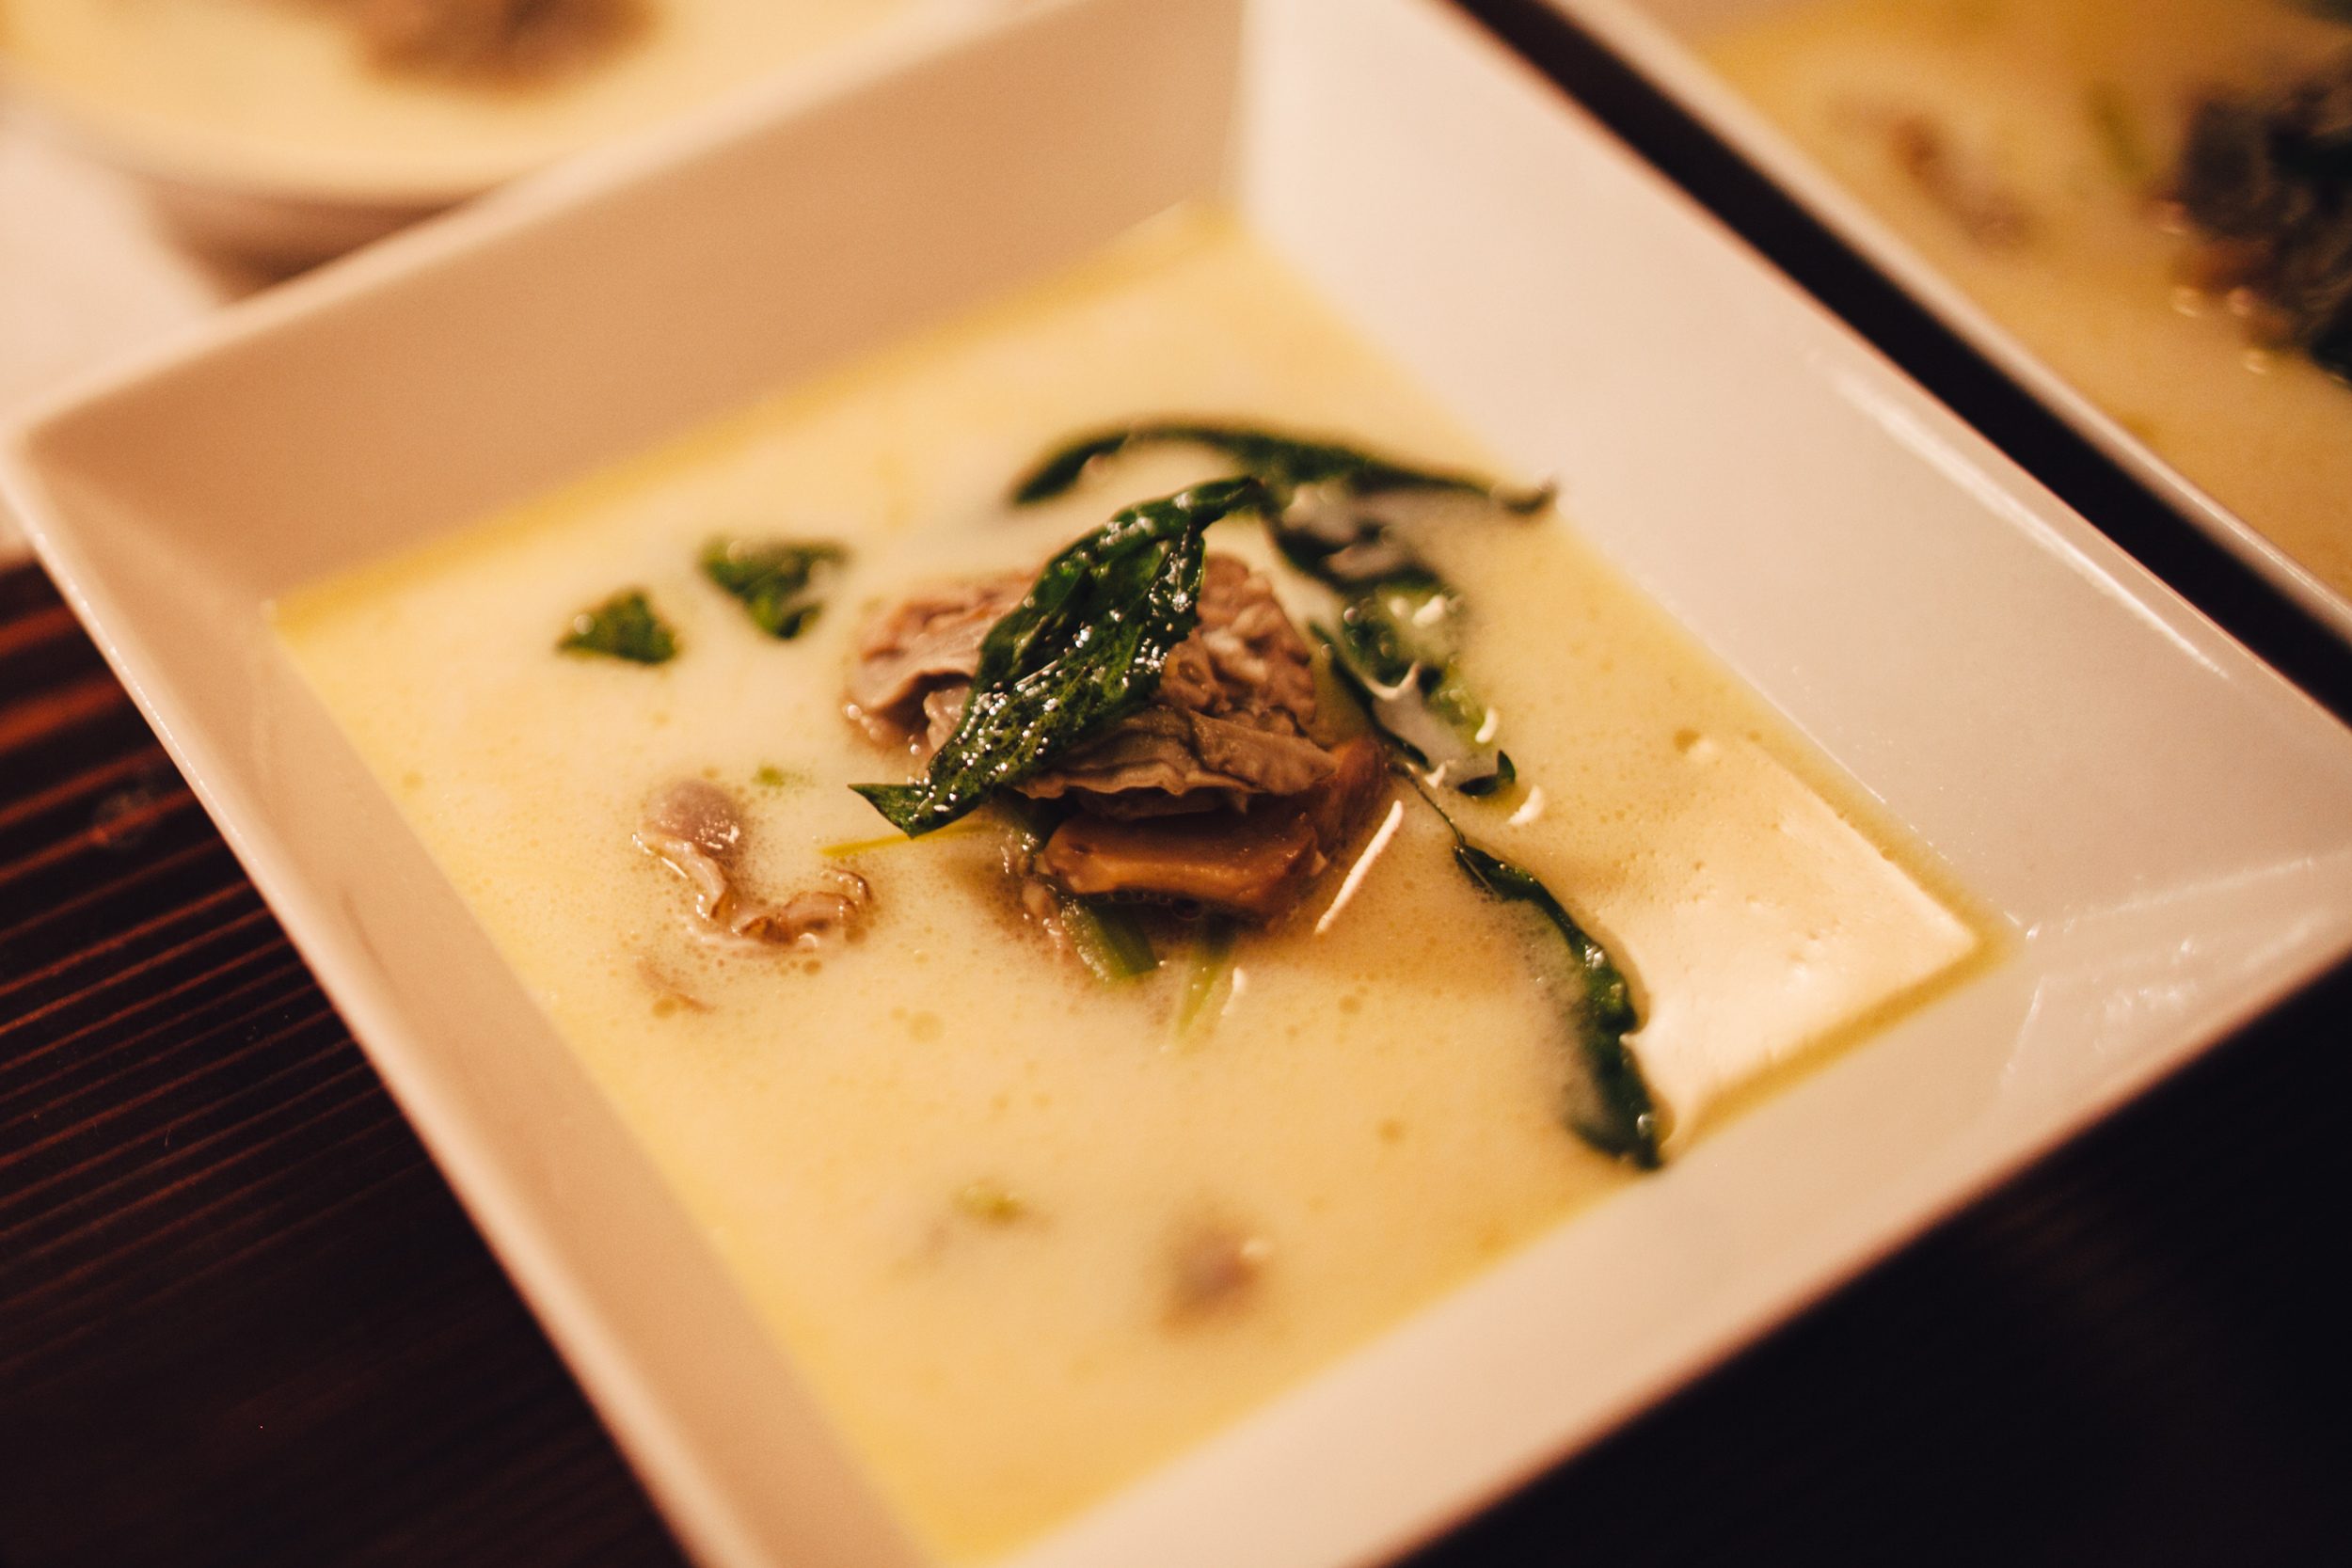 Oyster bisque with fresh Gulf oysters in a shellfish-based broth, with a hint of saffron and topped with grilled oyster mushrooms and a drizzle of basil oil.